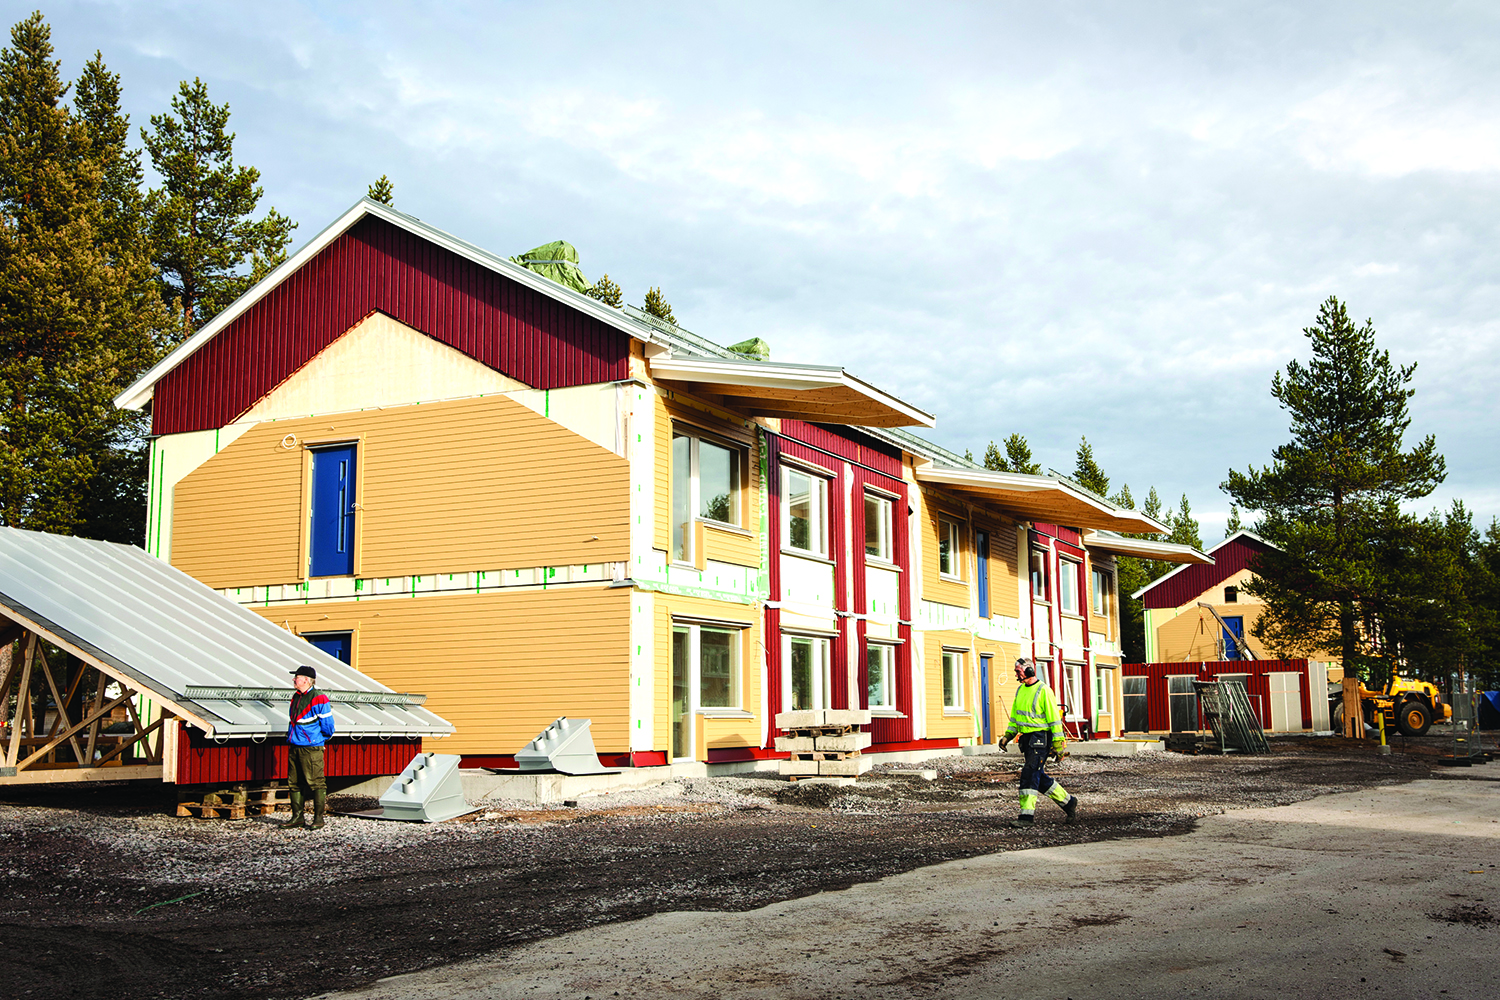 New housing being built in Gällivare, as part of LKAB's 'urban transformation' program.